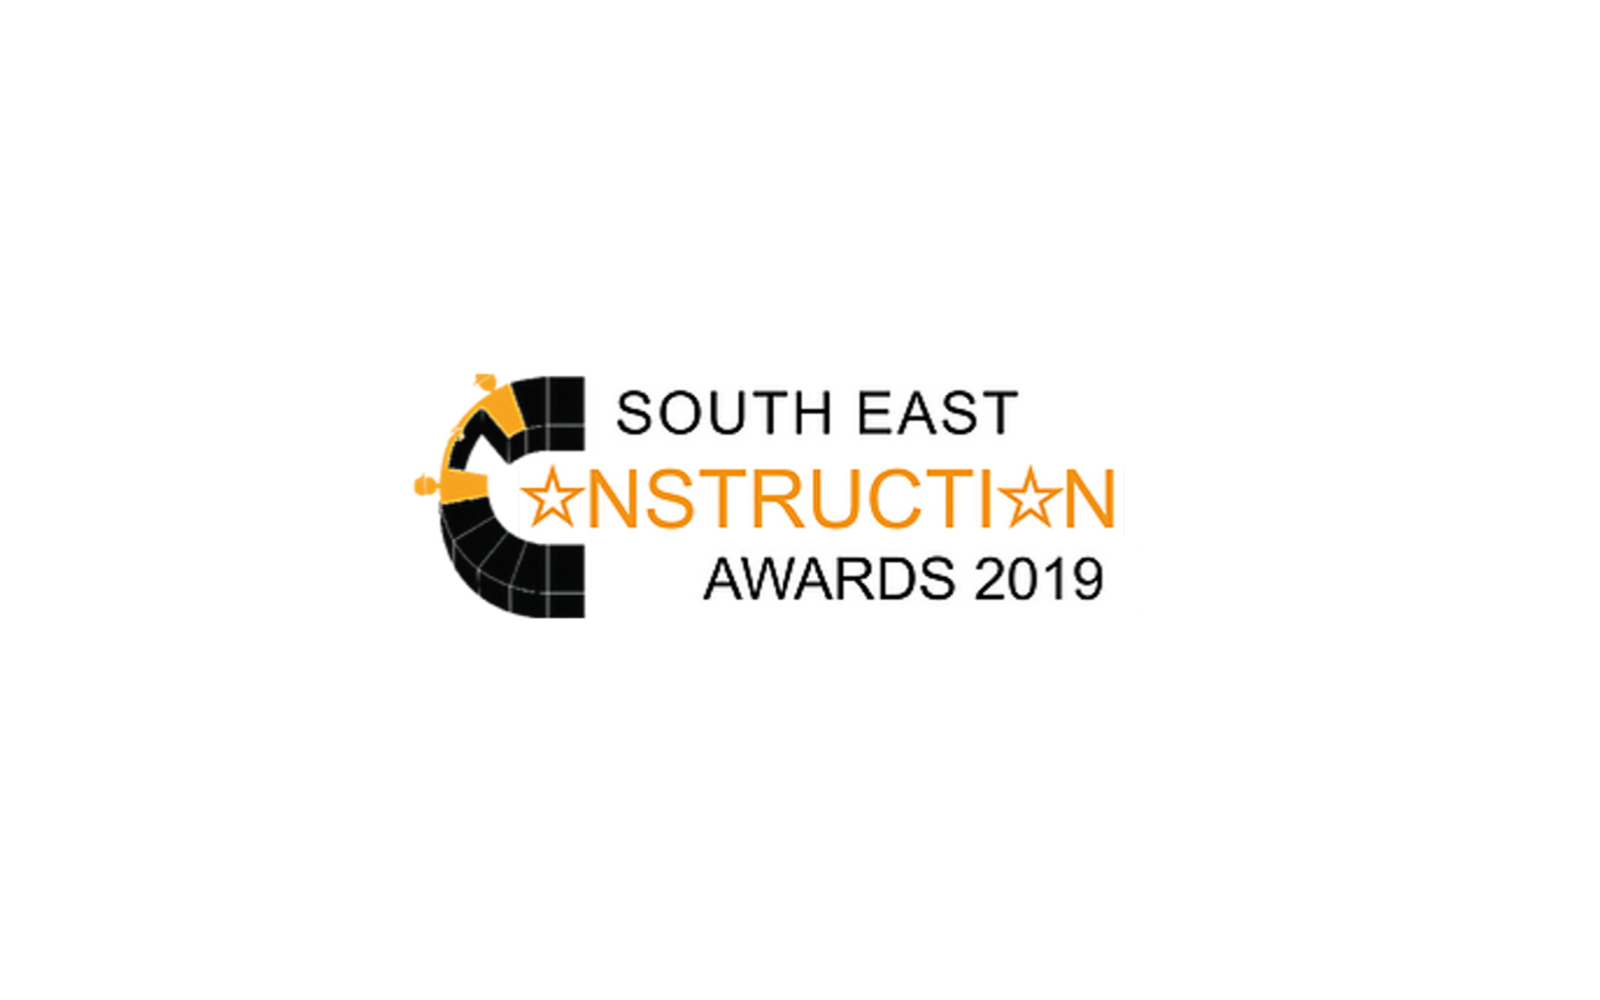 South East Construction Awards 2019 (1)